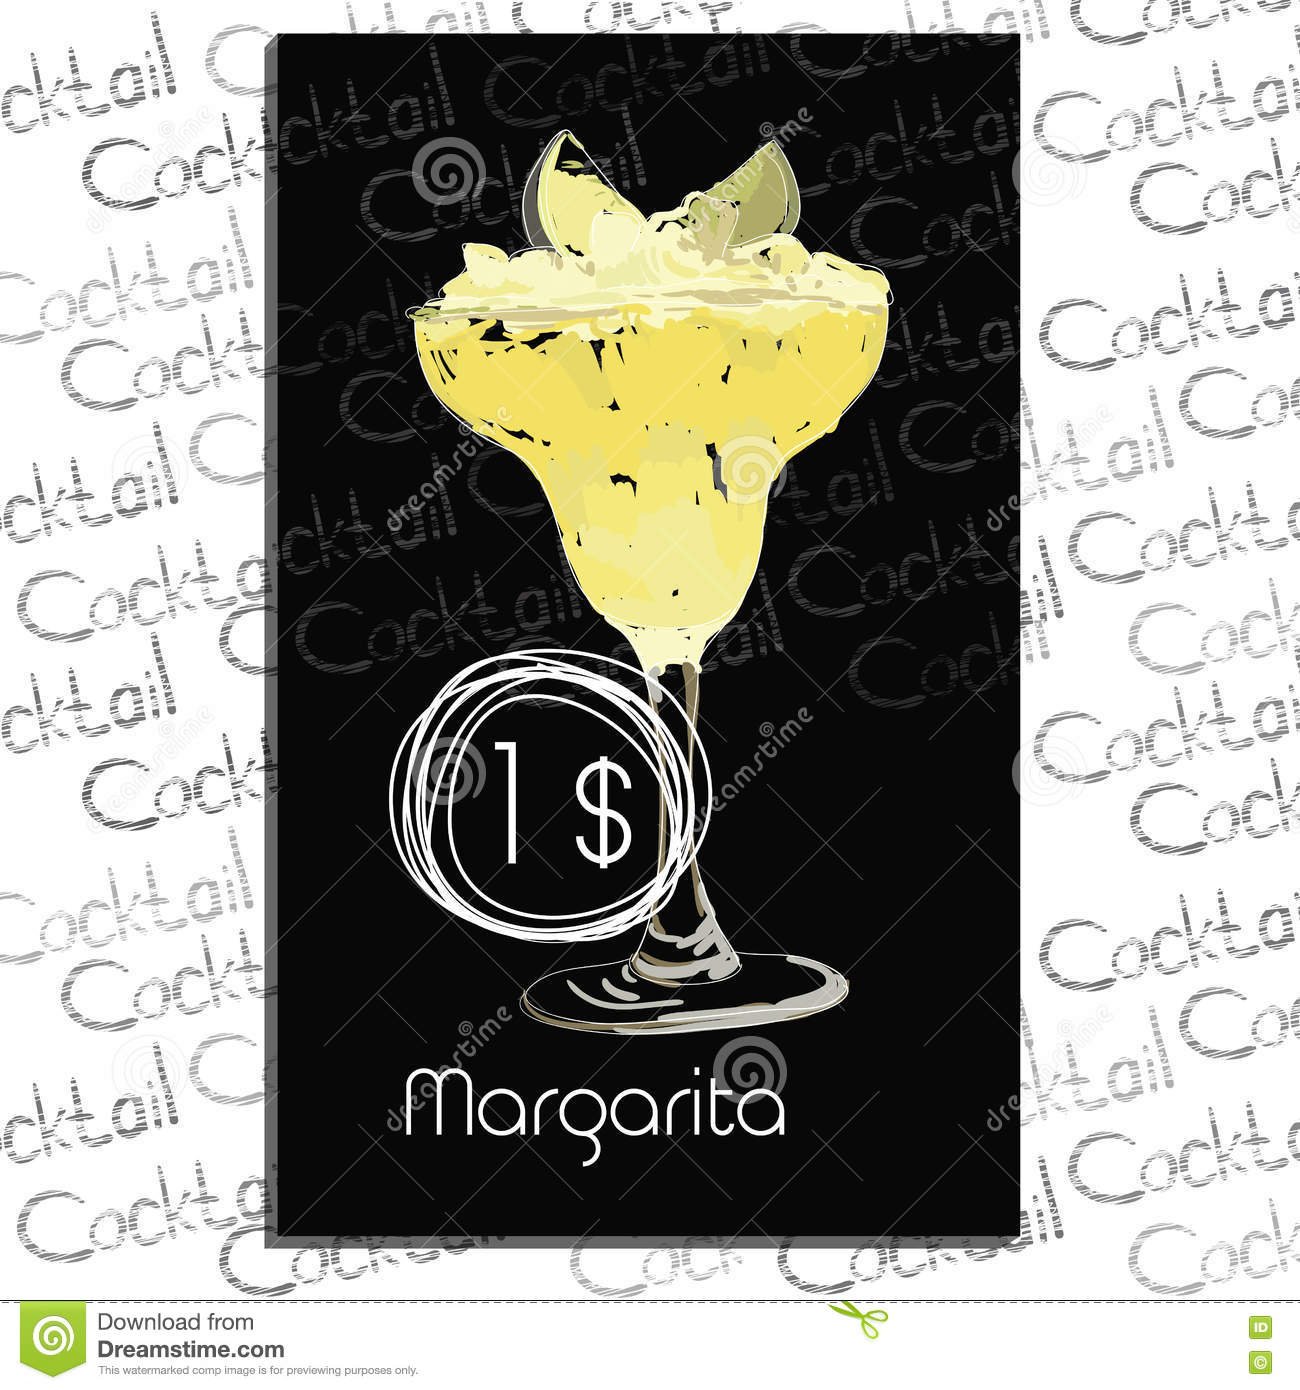 Cocktail Margarita with price on chalk board. Template elements for cocktail bar